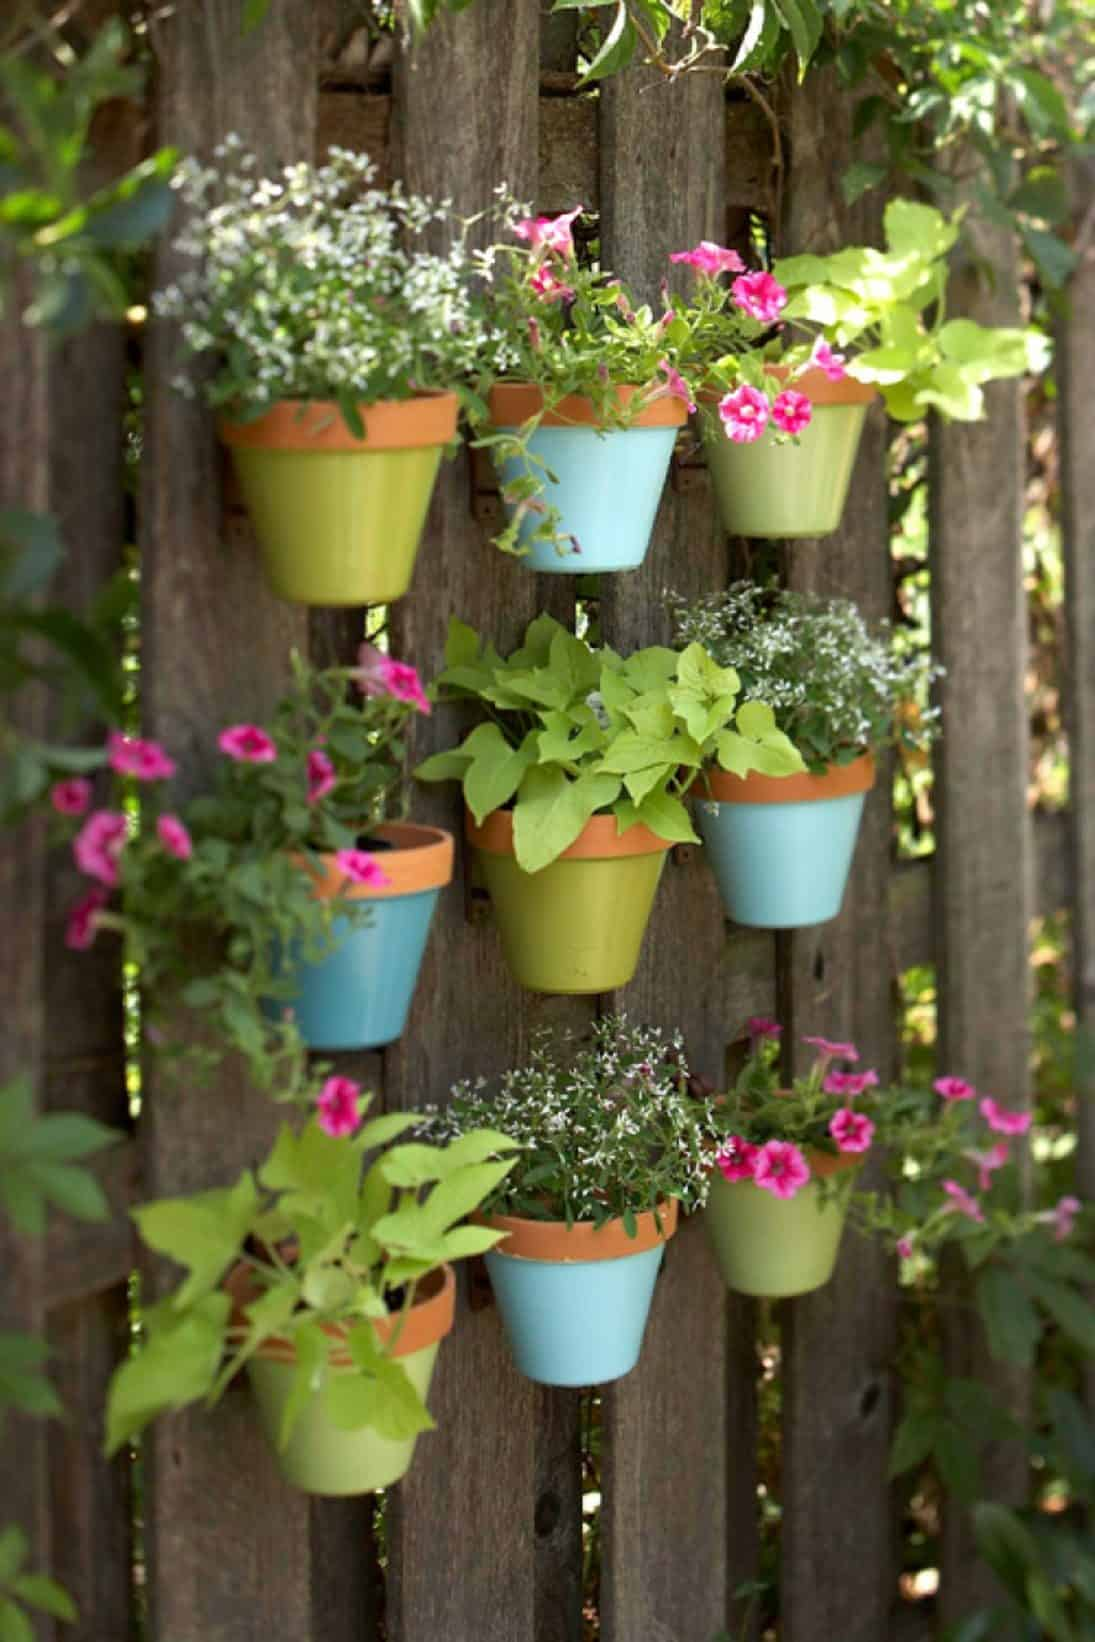 07-pastel-shades-of-blue-and-green-highlight-this-charming-design-vertical-gardens